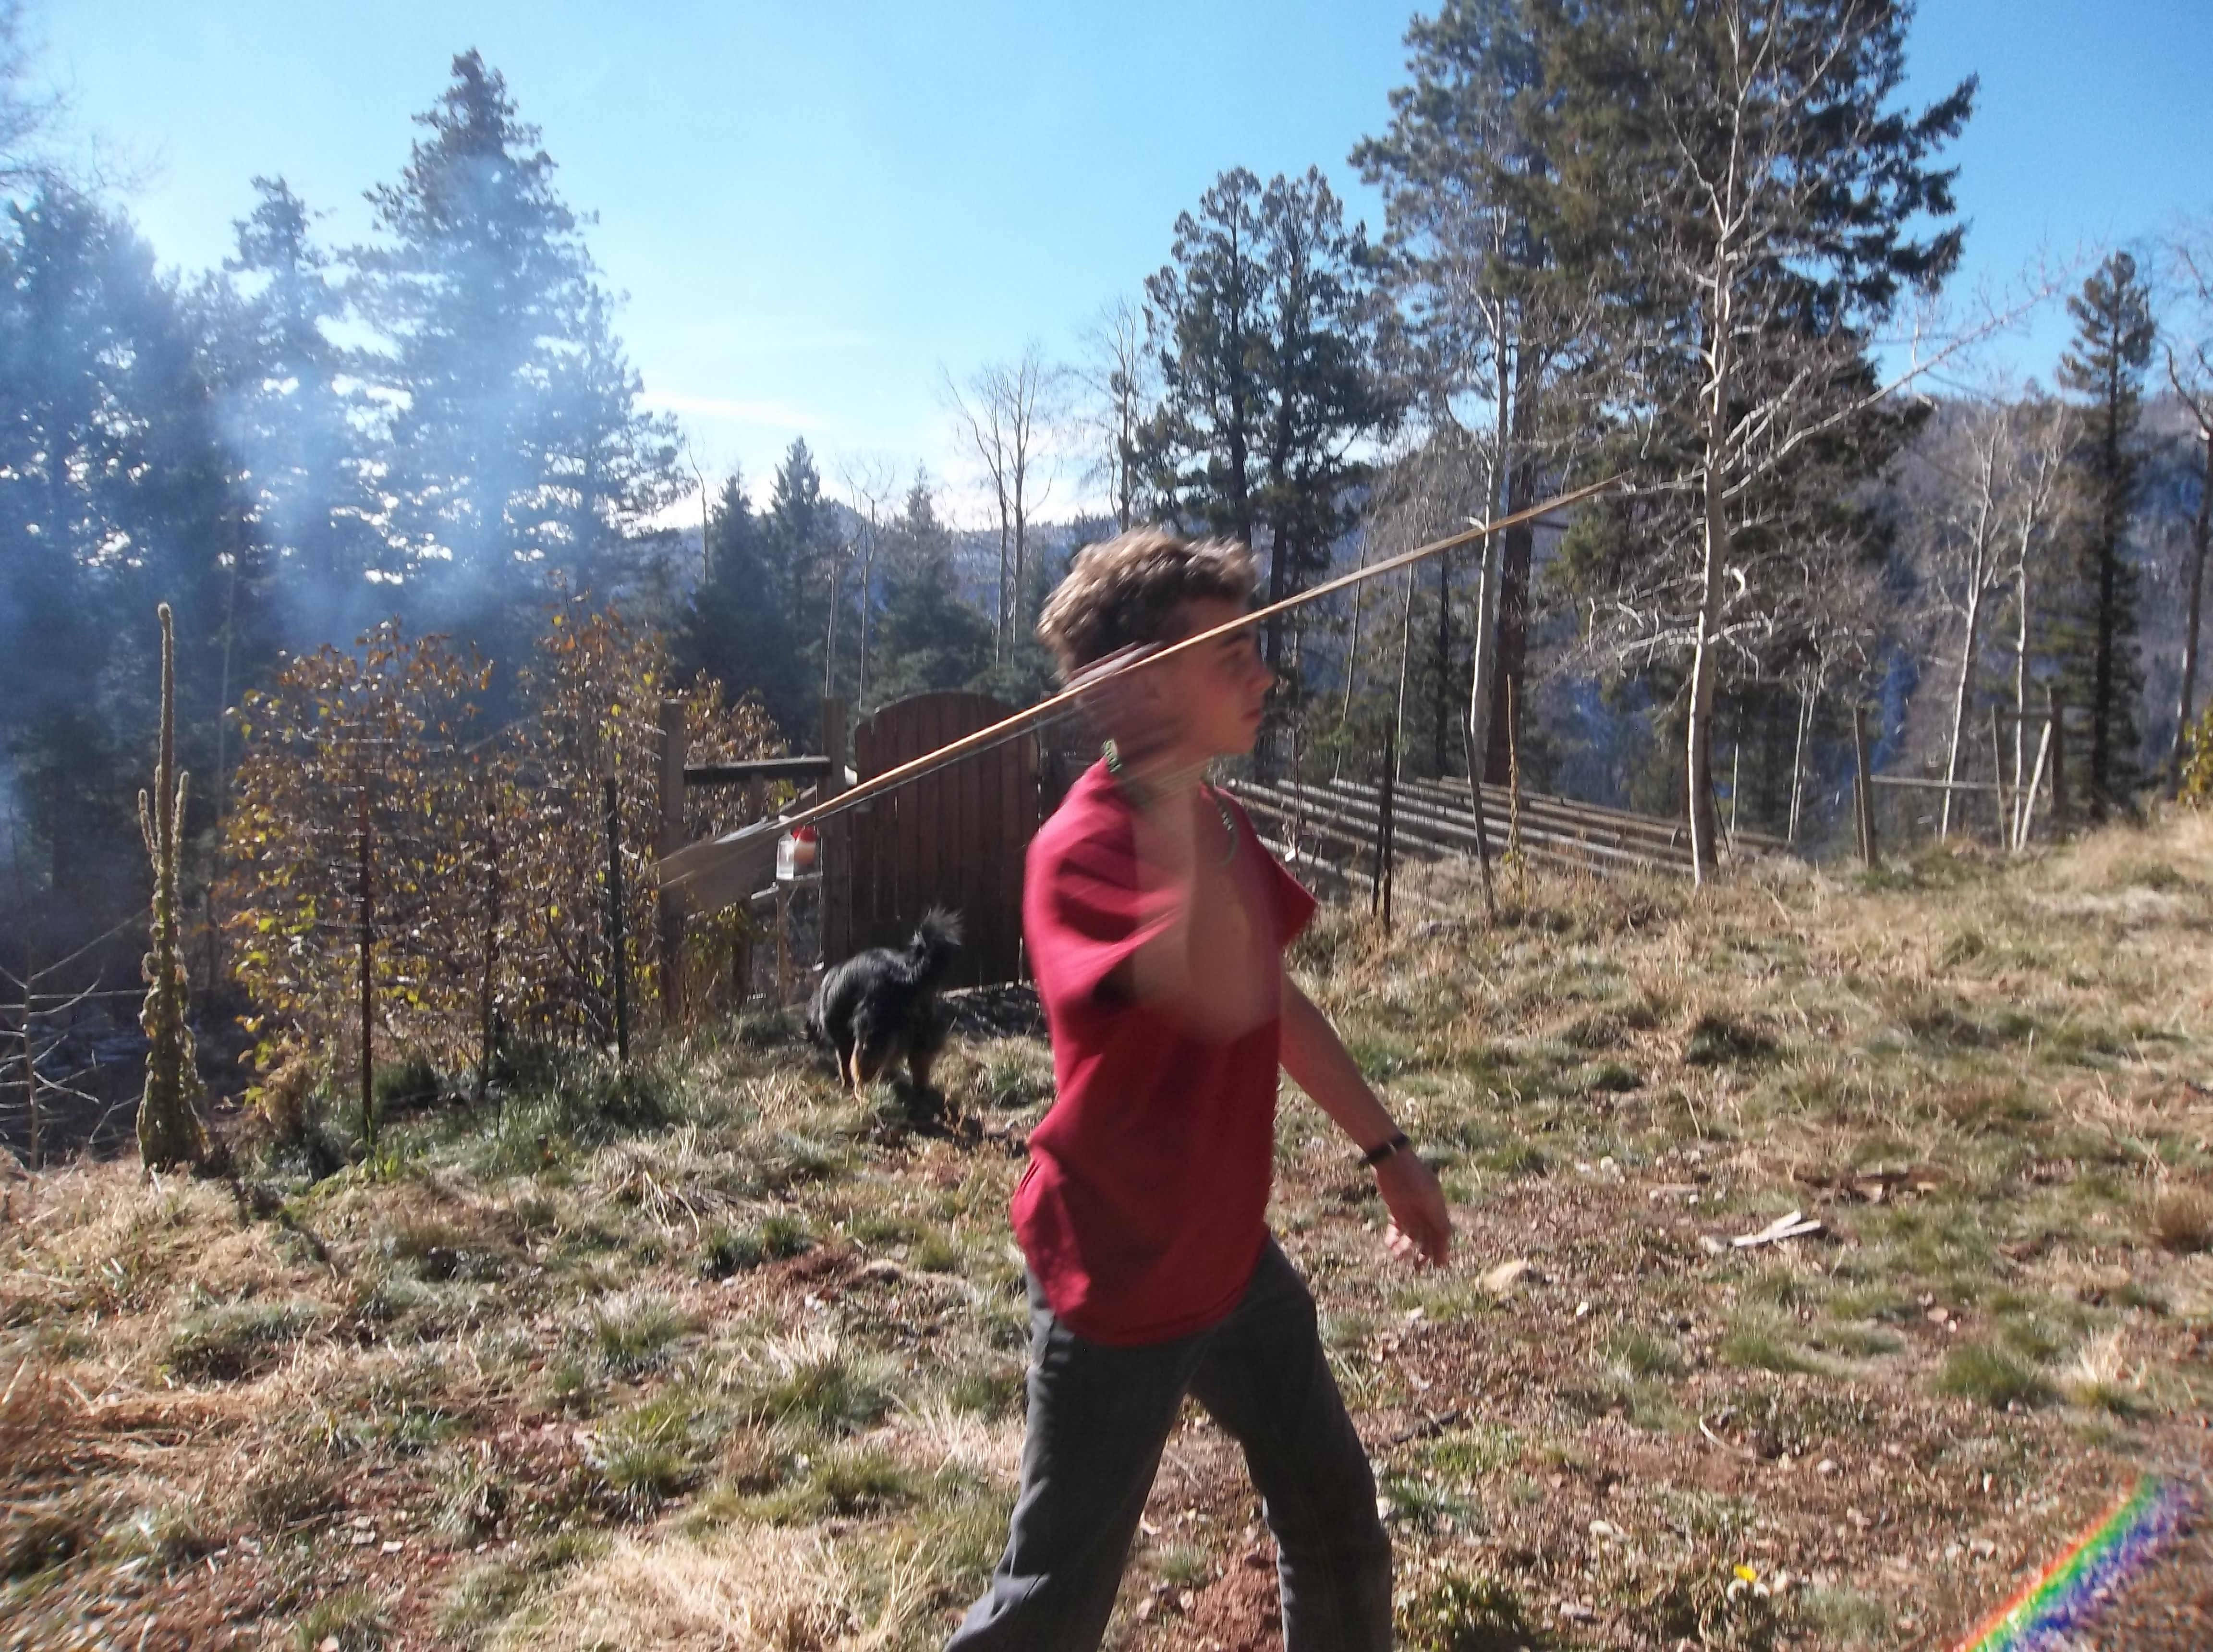 The Pathfinder Dart- Atlatl Using String(With Duct Tape Fletching)